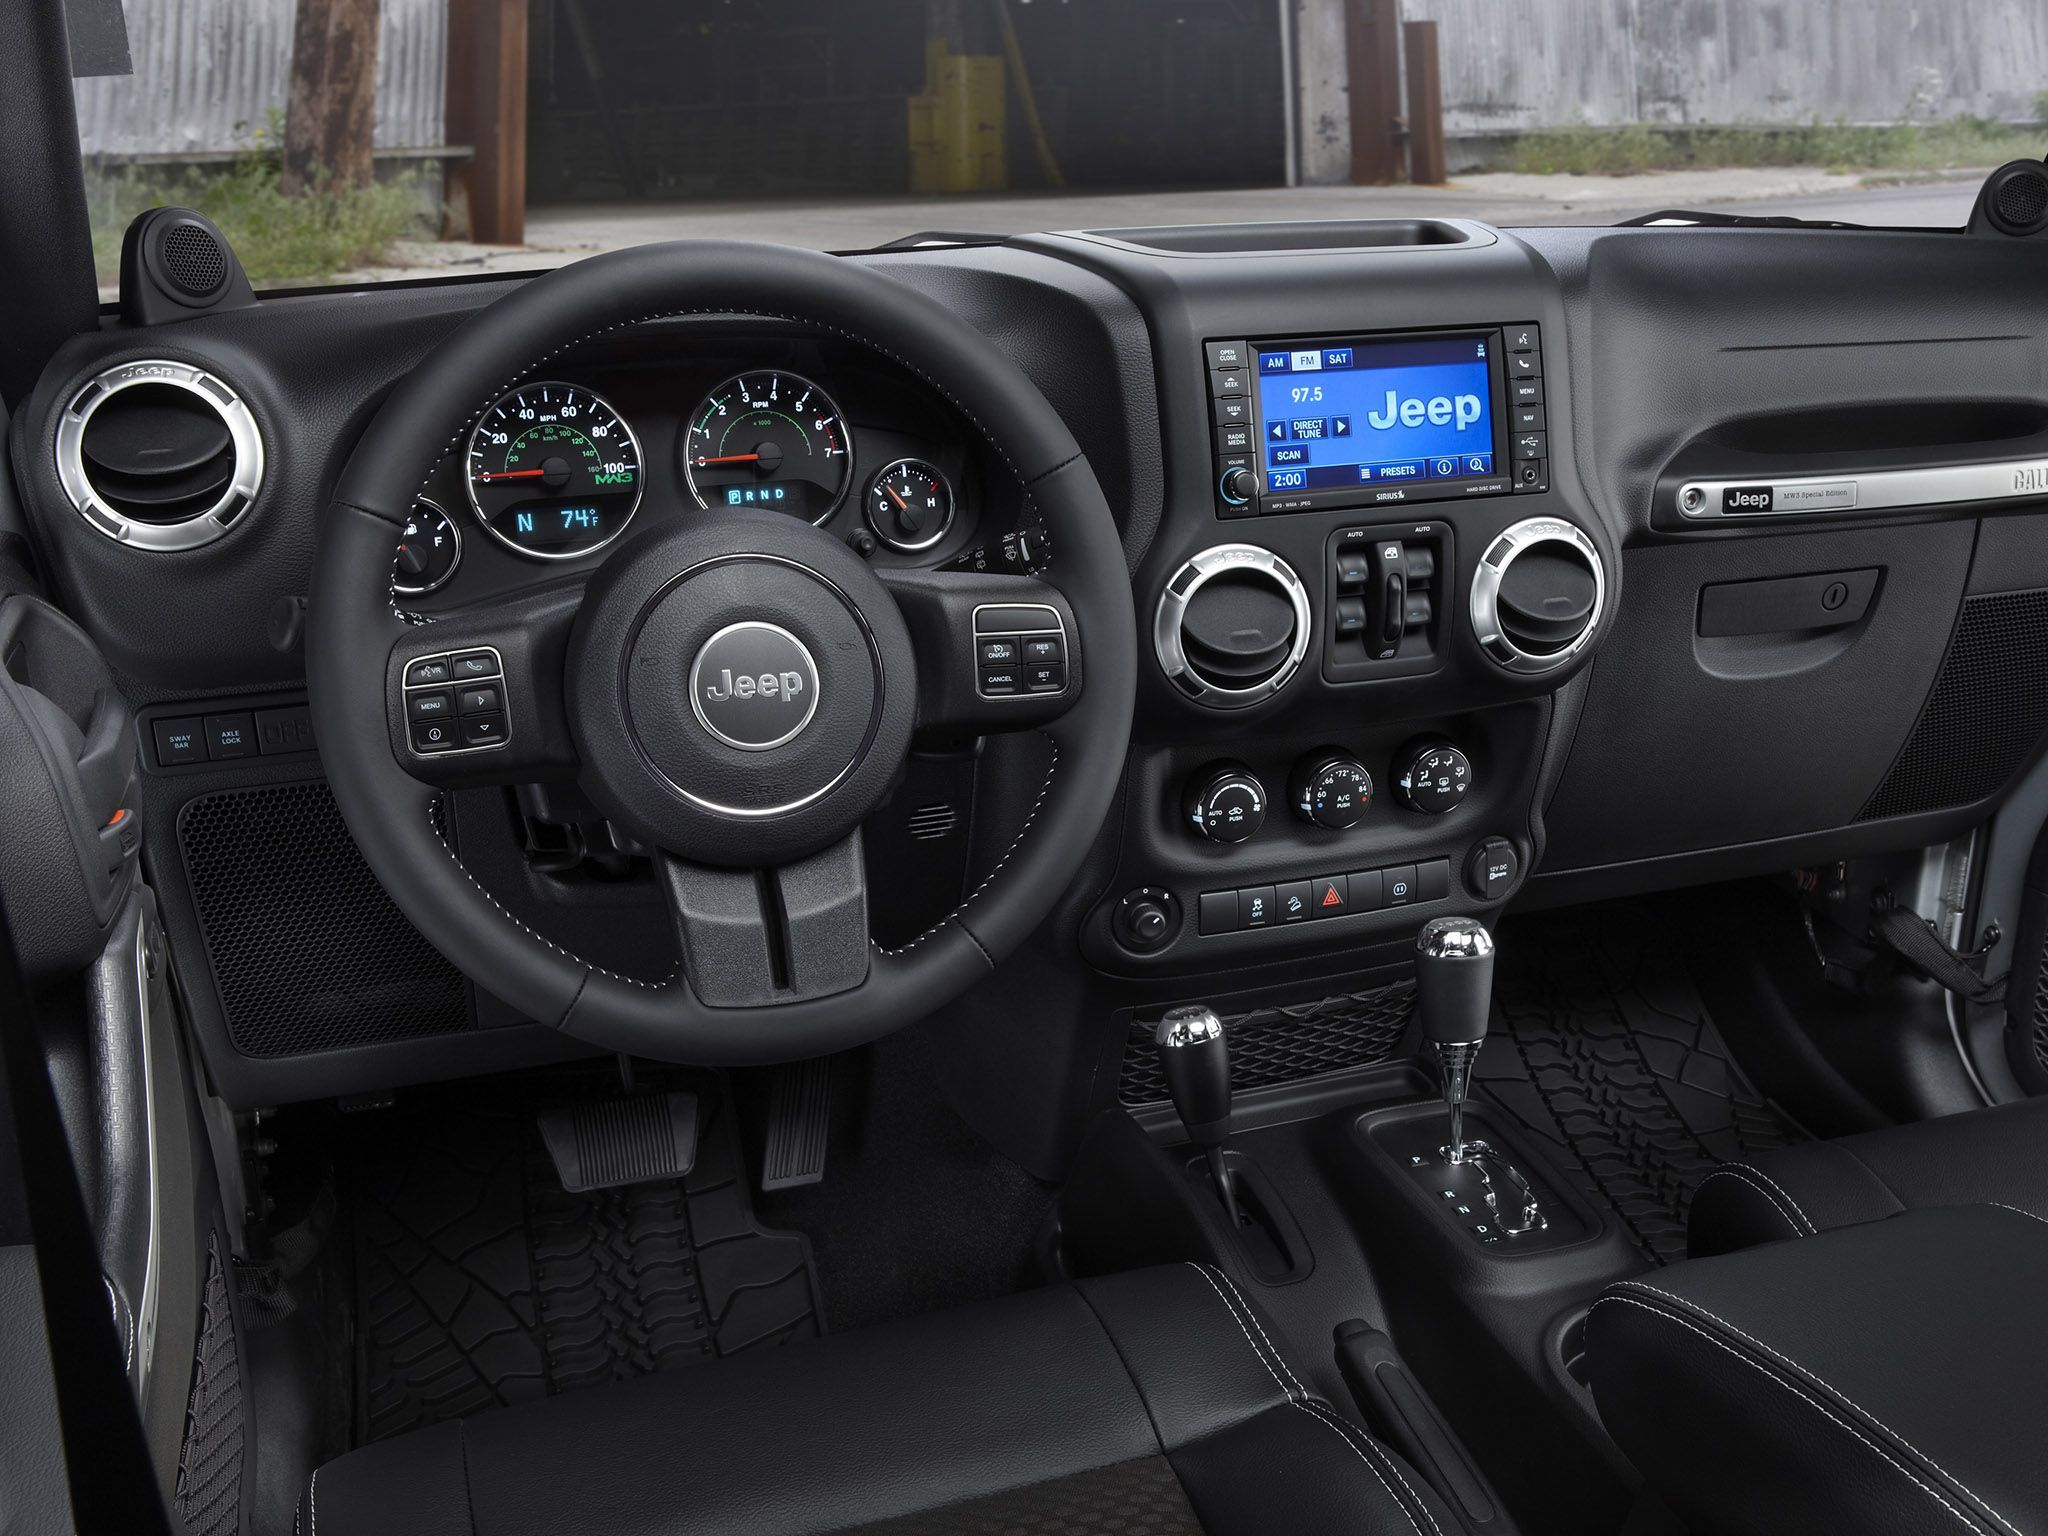 2020 Jeep Wrangler Unlimited Interior Google Search Jeep